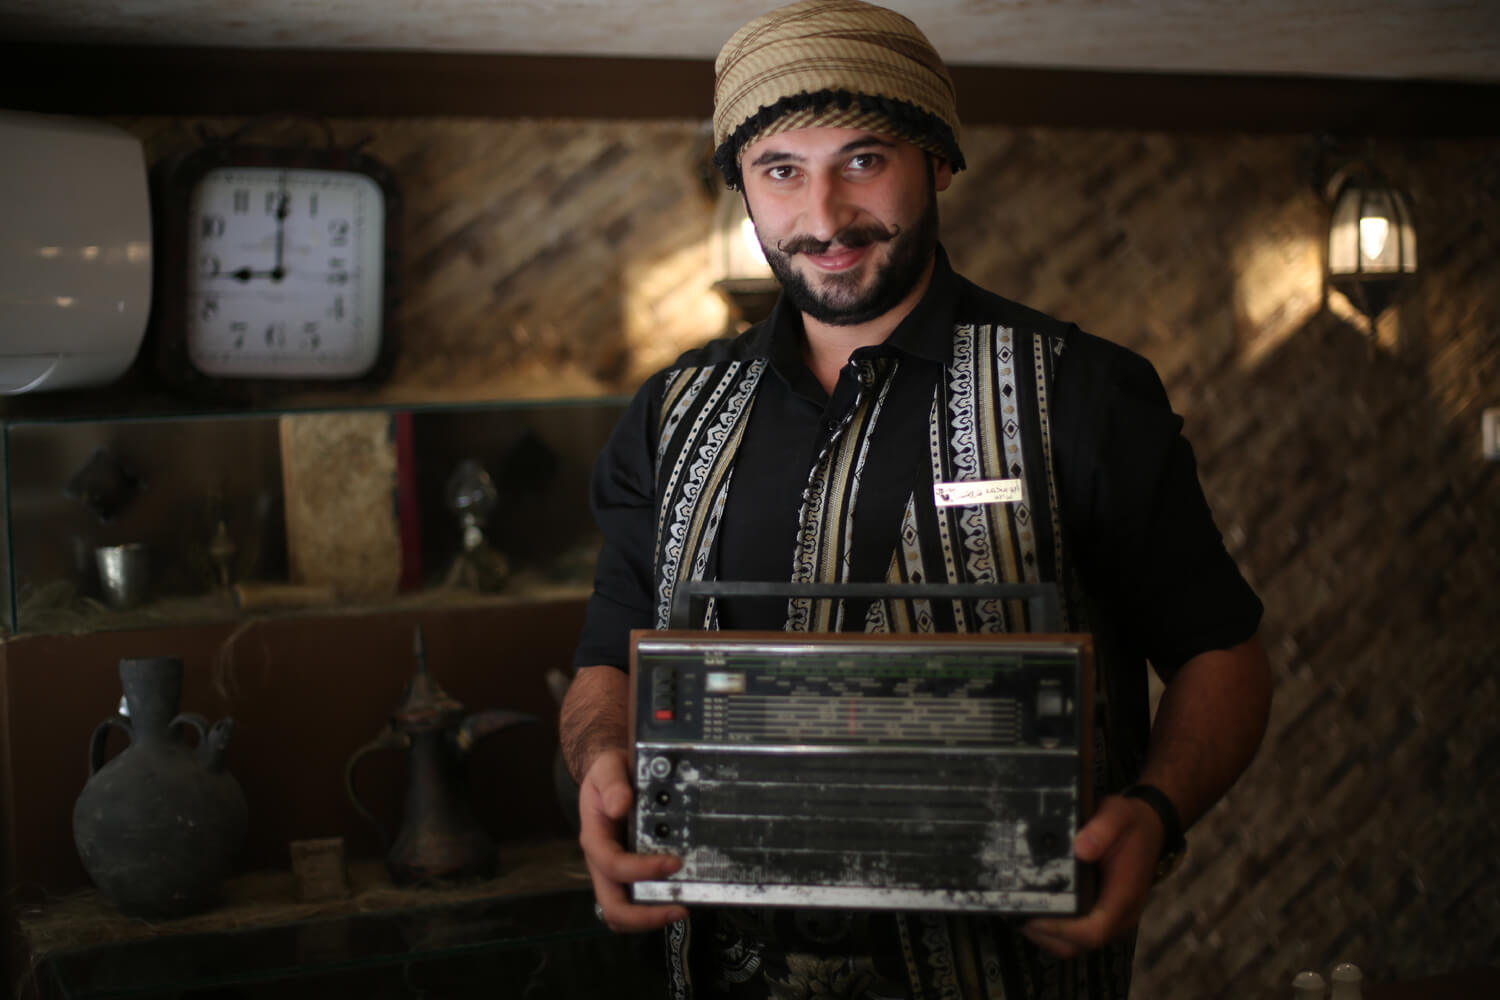 Qatarji with an old radio brought from the Aleppo restaurant. (Photo: Mohammed Asad)